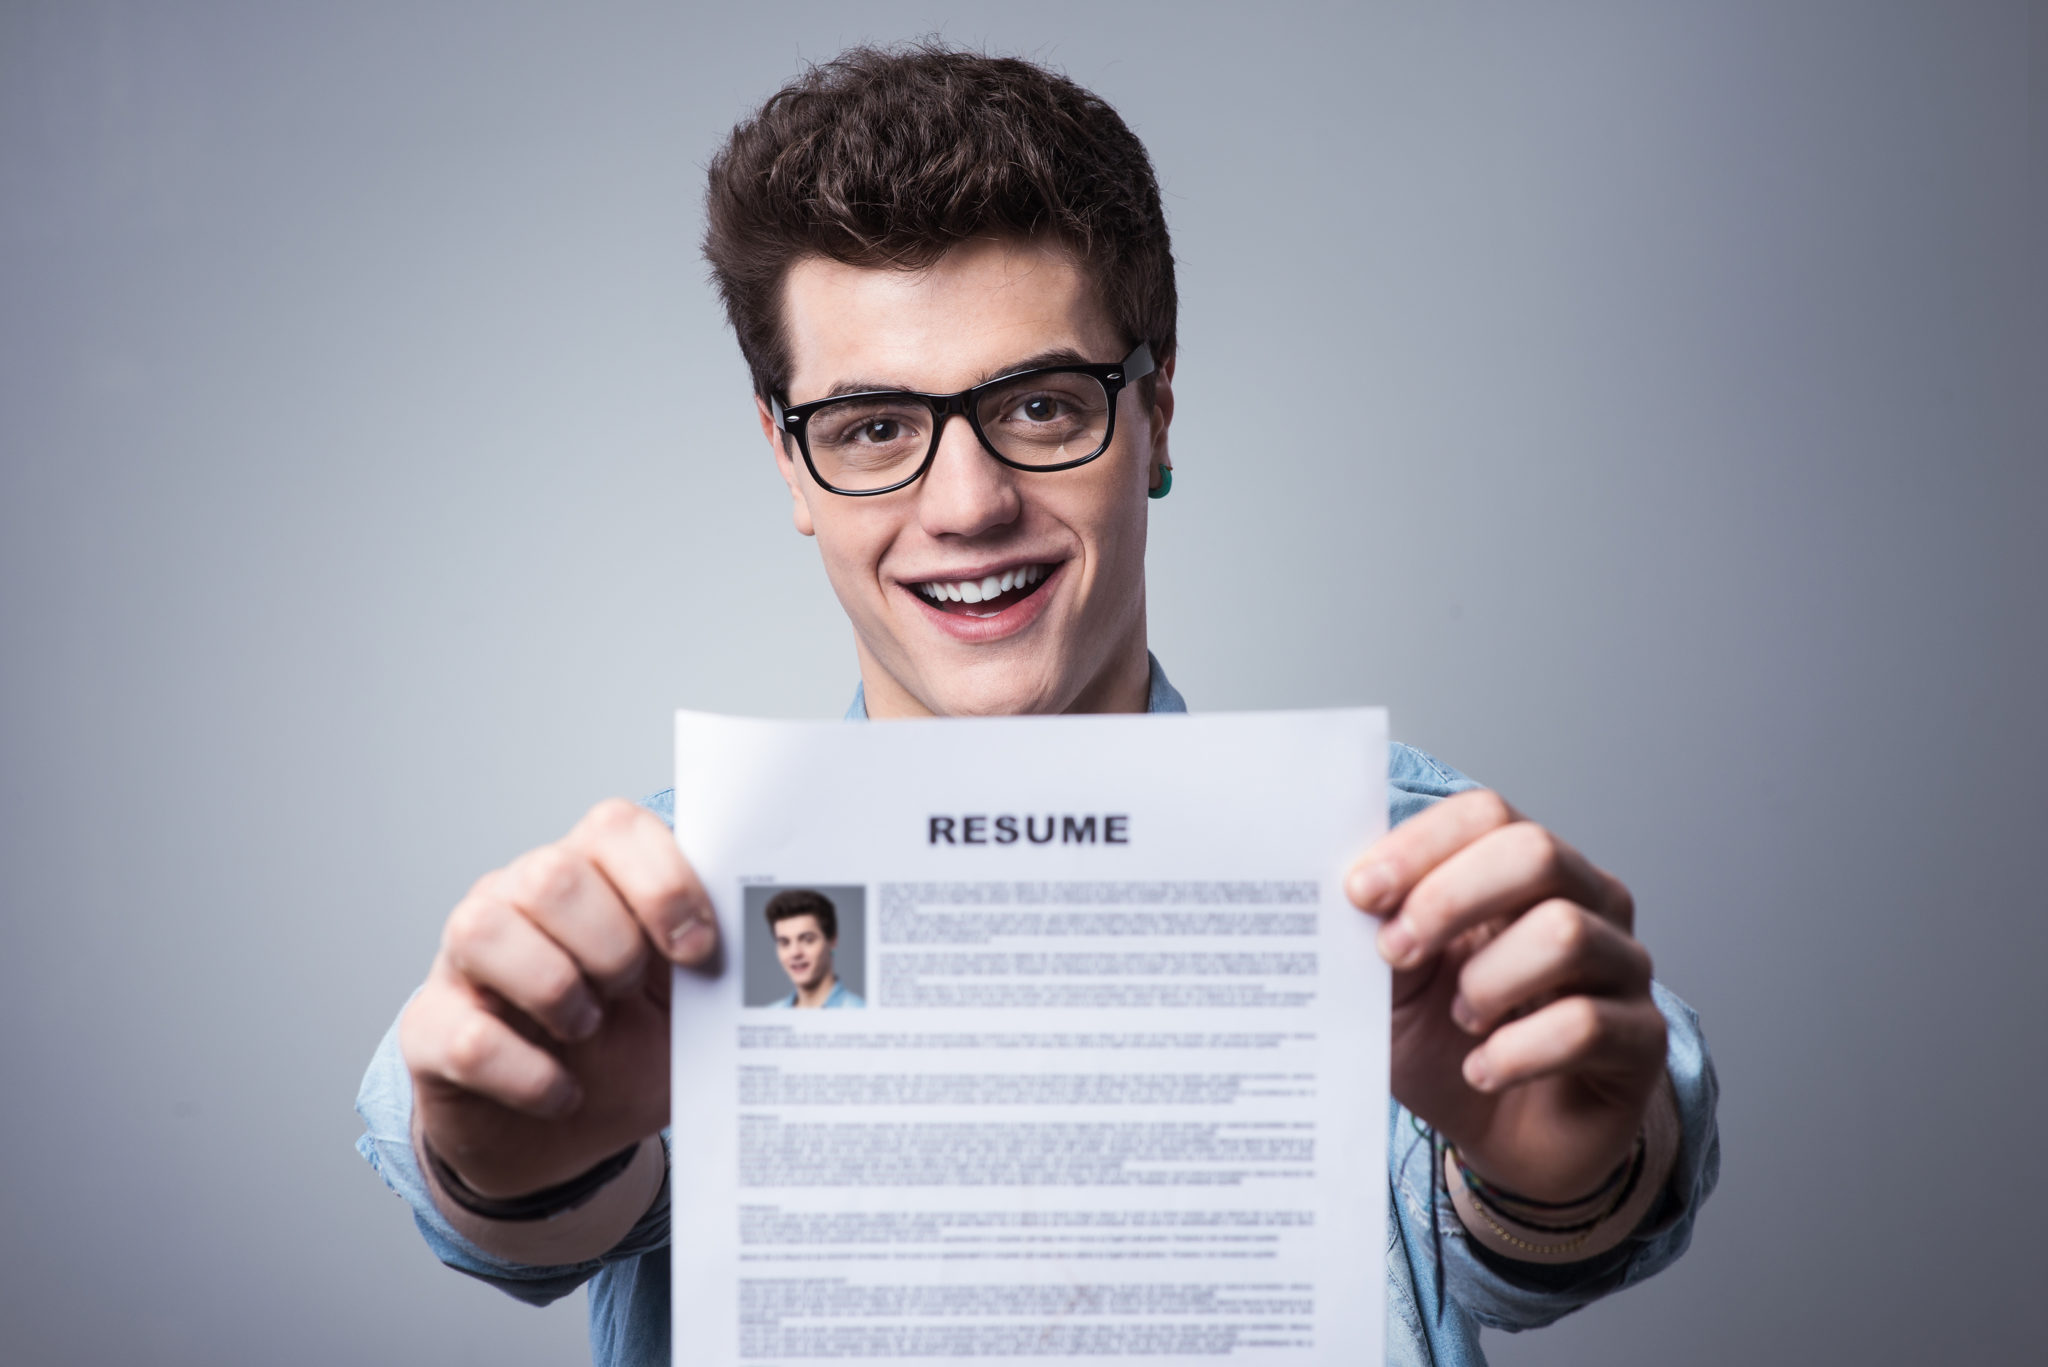 Bring Resume To Interview Writing A Resume Without College Degree No Problem